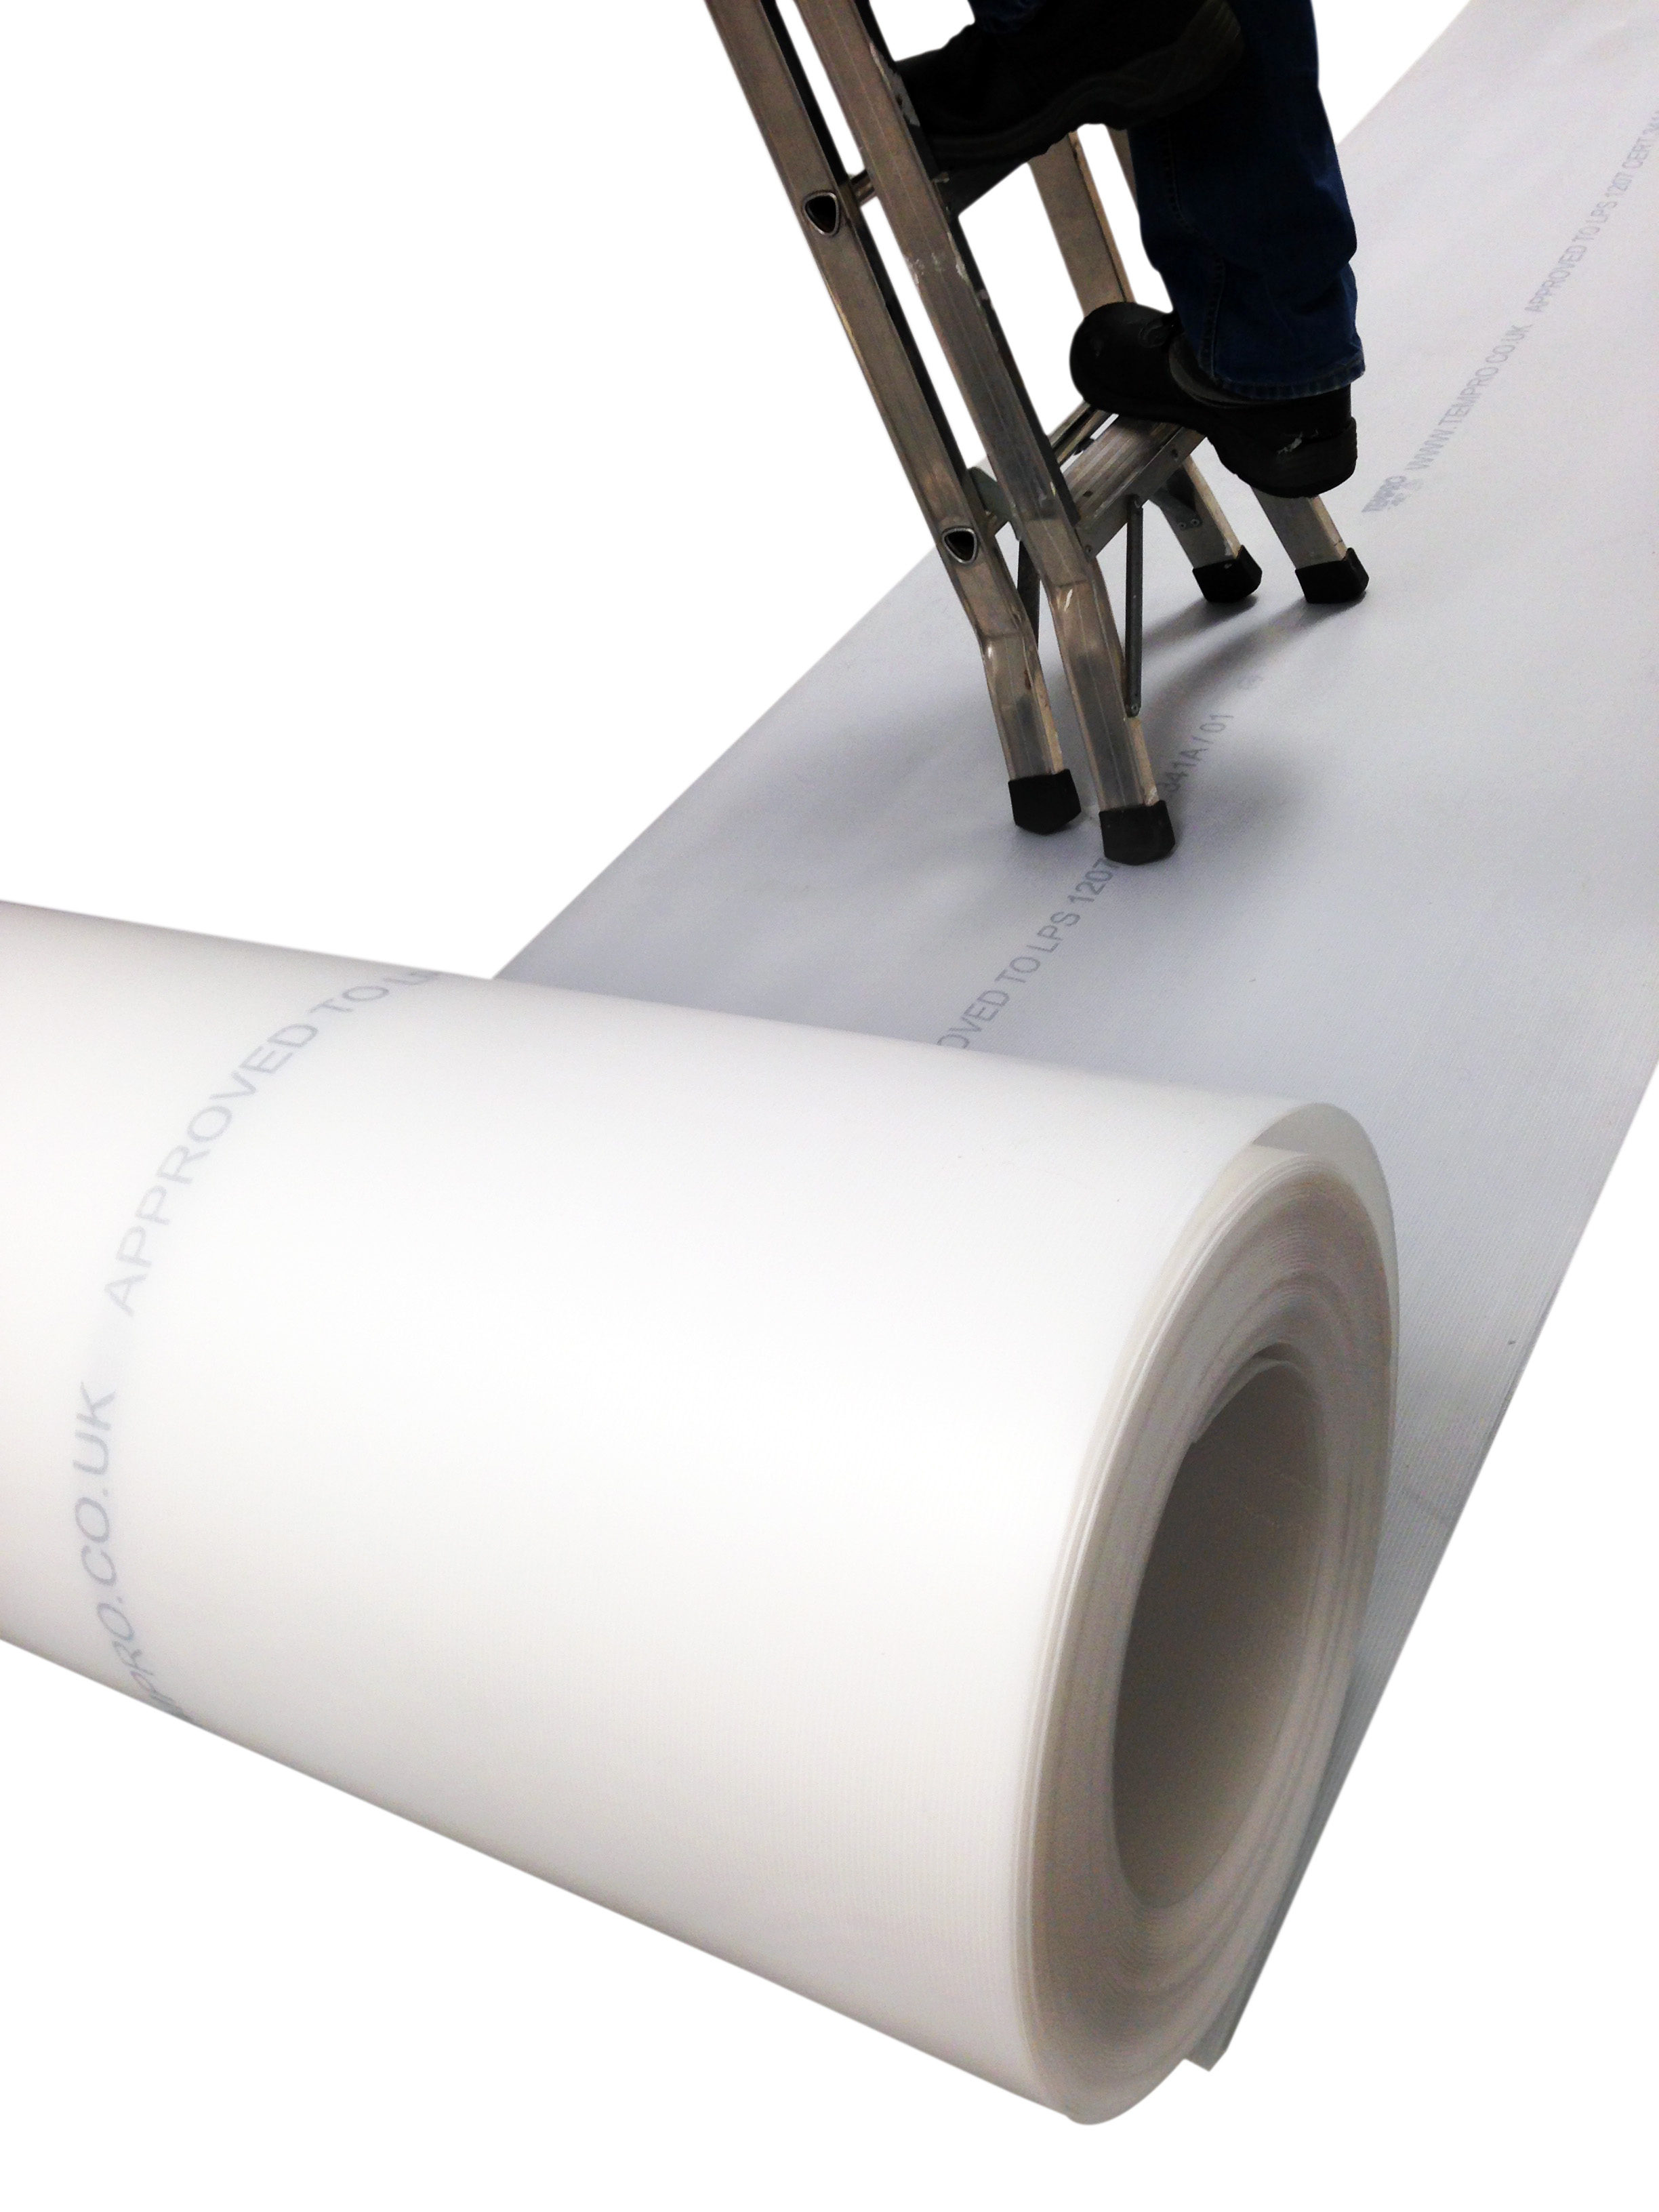 Correx (corex) Corrugated Plastic Roll Floor Protection Fire Retardant (LPS1207) 1M x 50M x 2mm